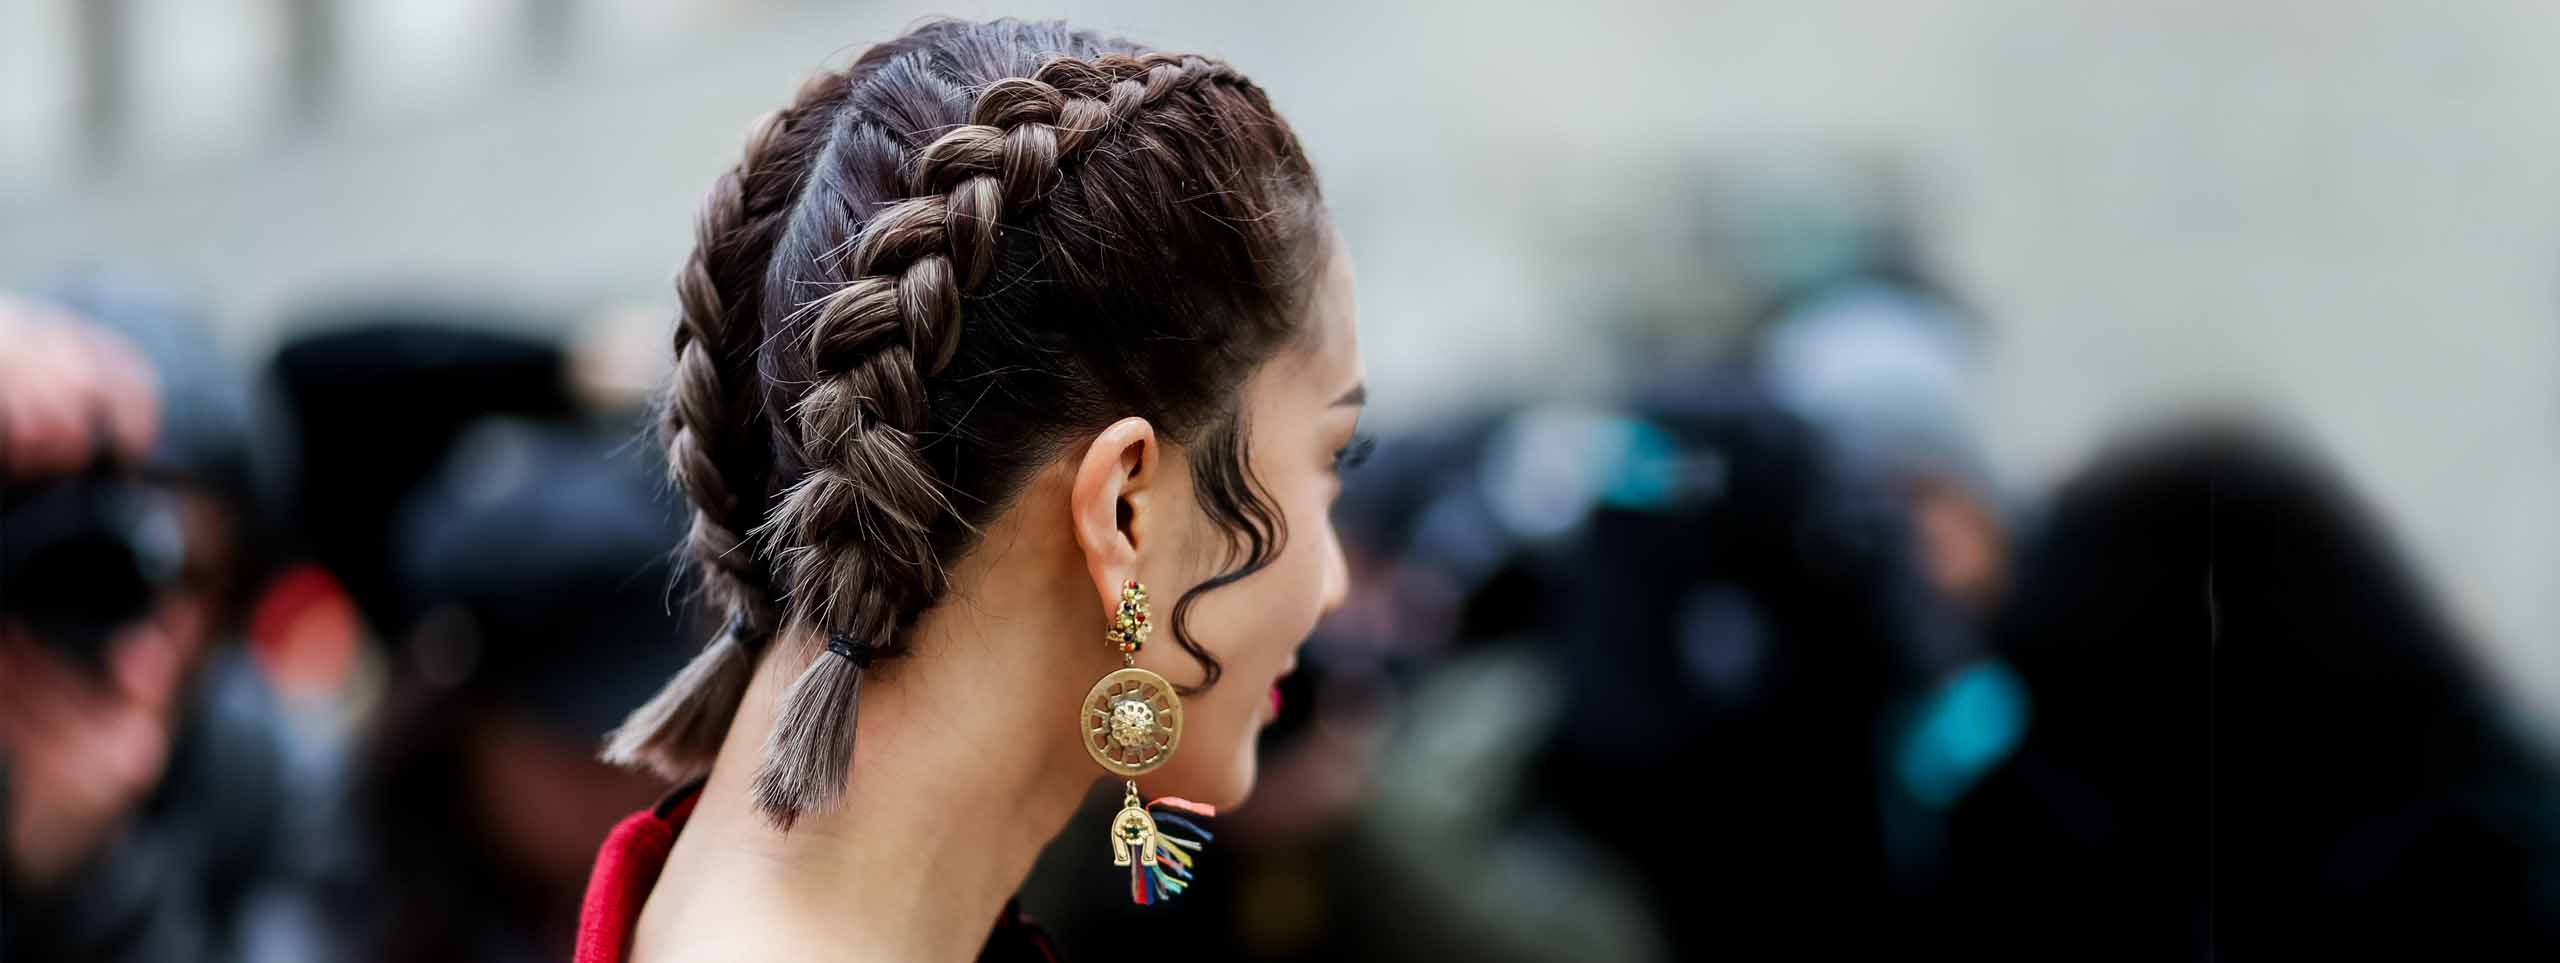 2560x963_woman-plaits-short-hair-earring